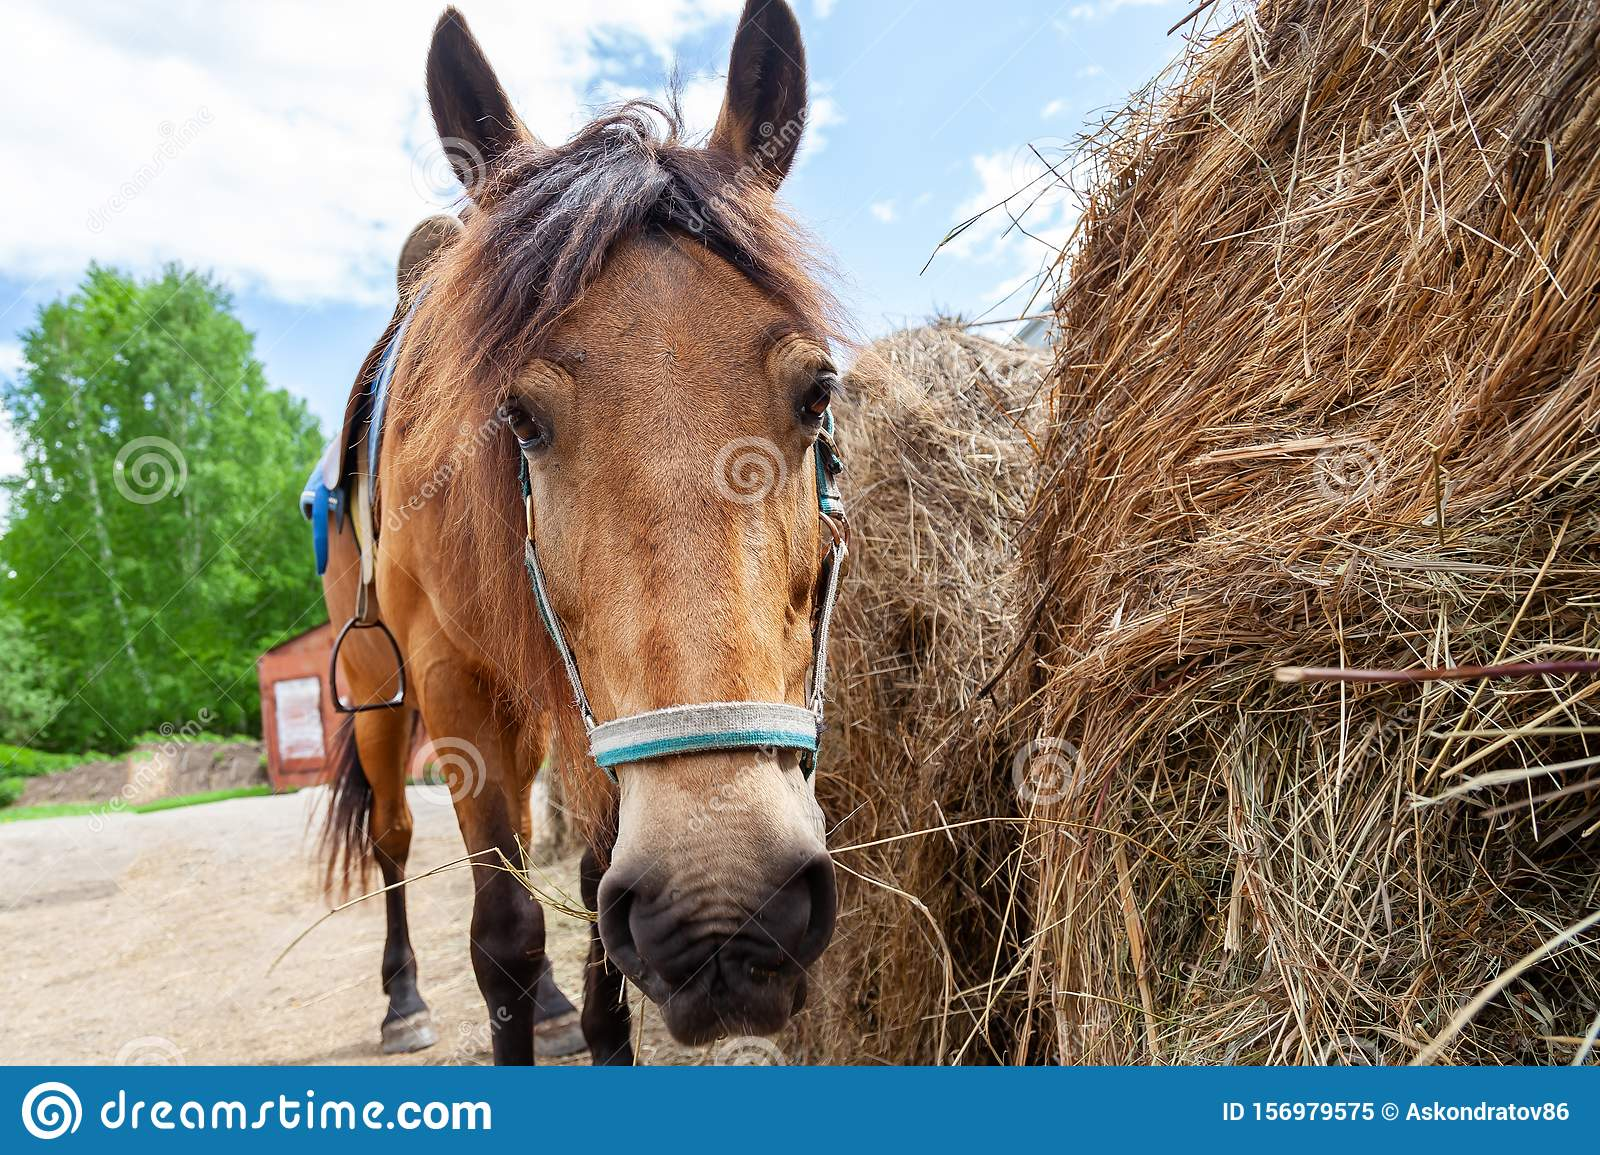 Close up face of A arabian horse with a saddle on his back bowed his head and eats hay from a dry stack